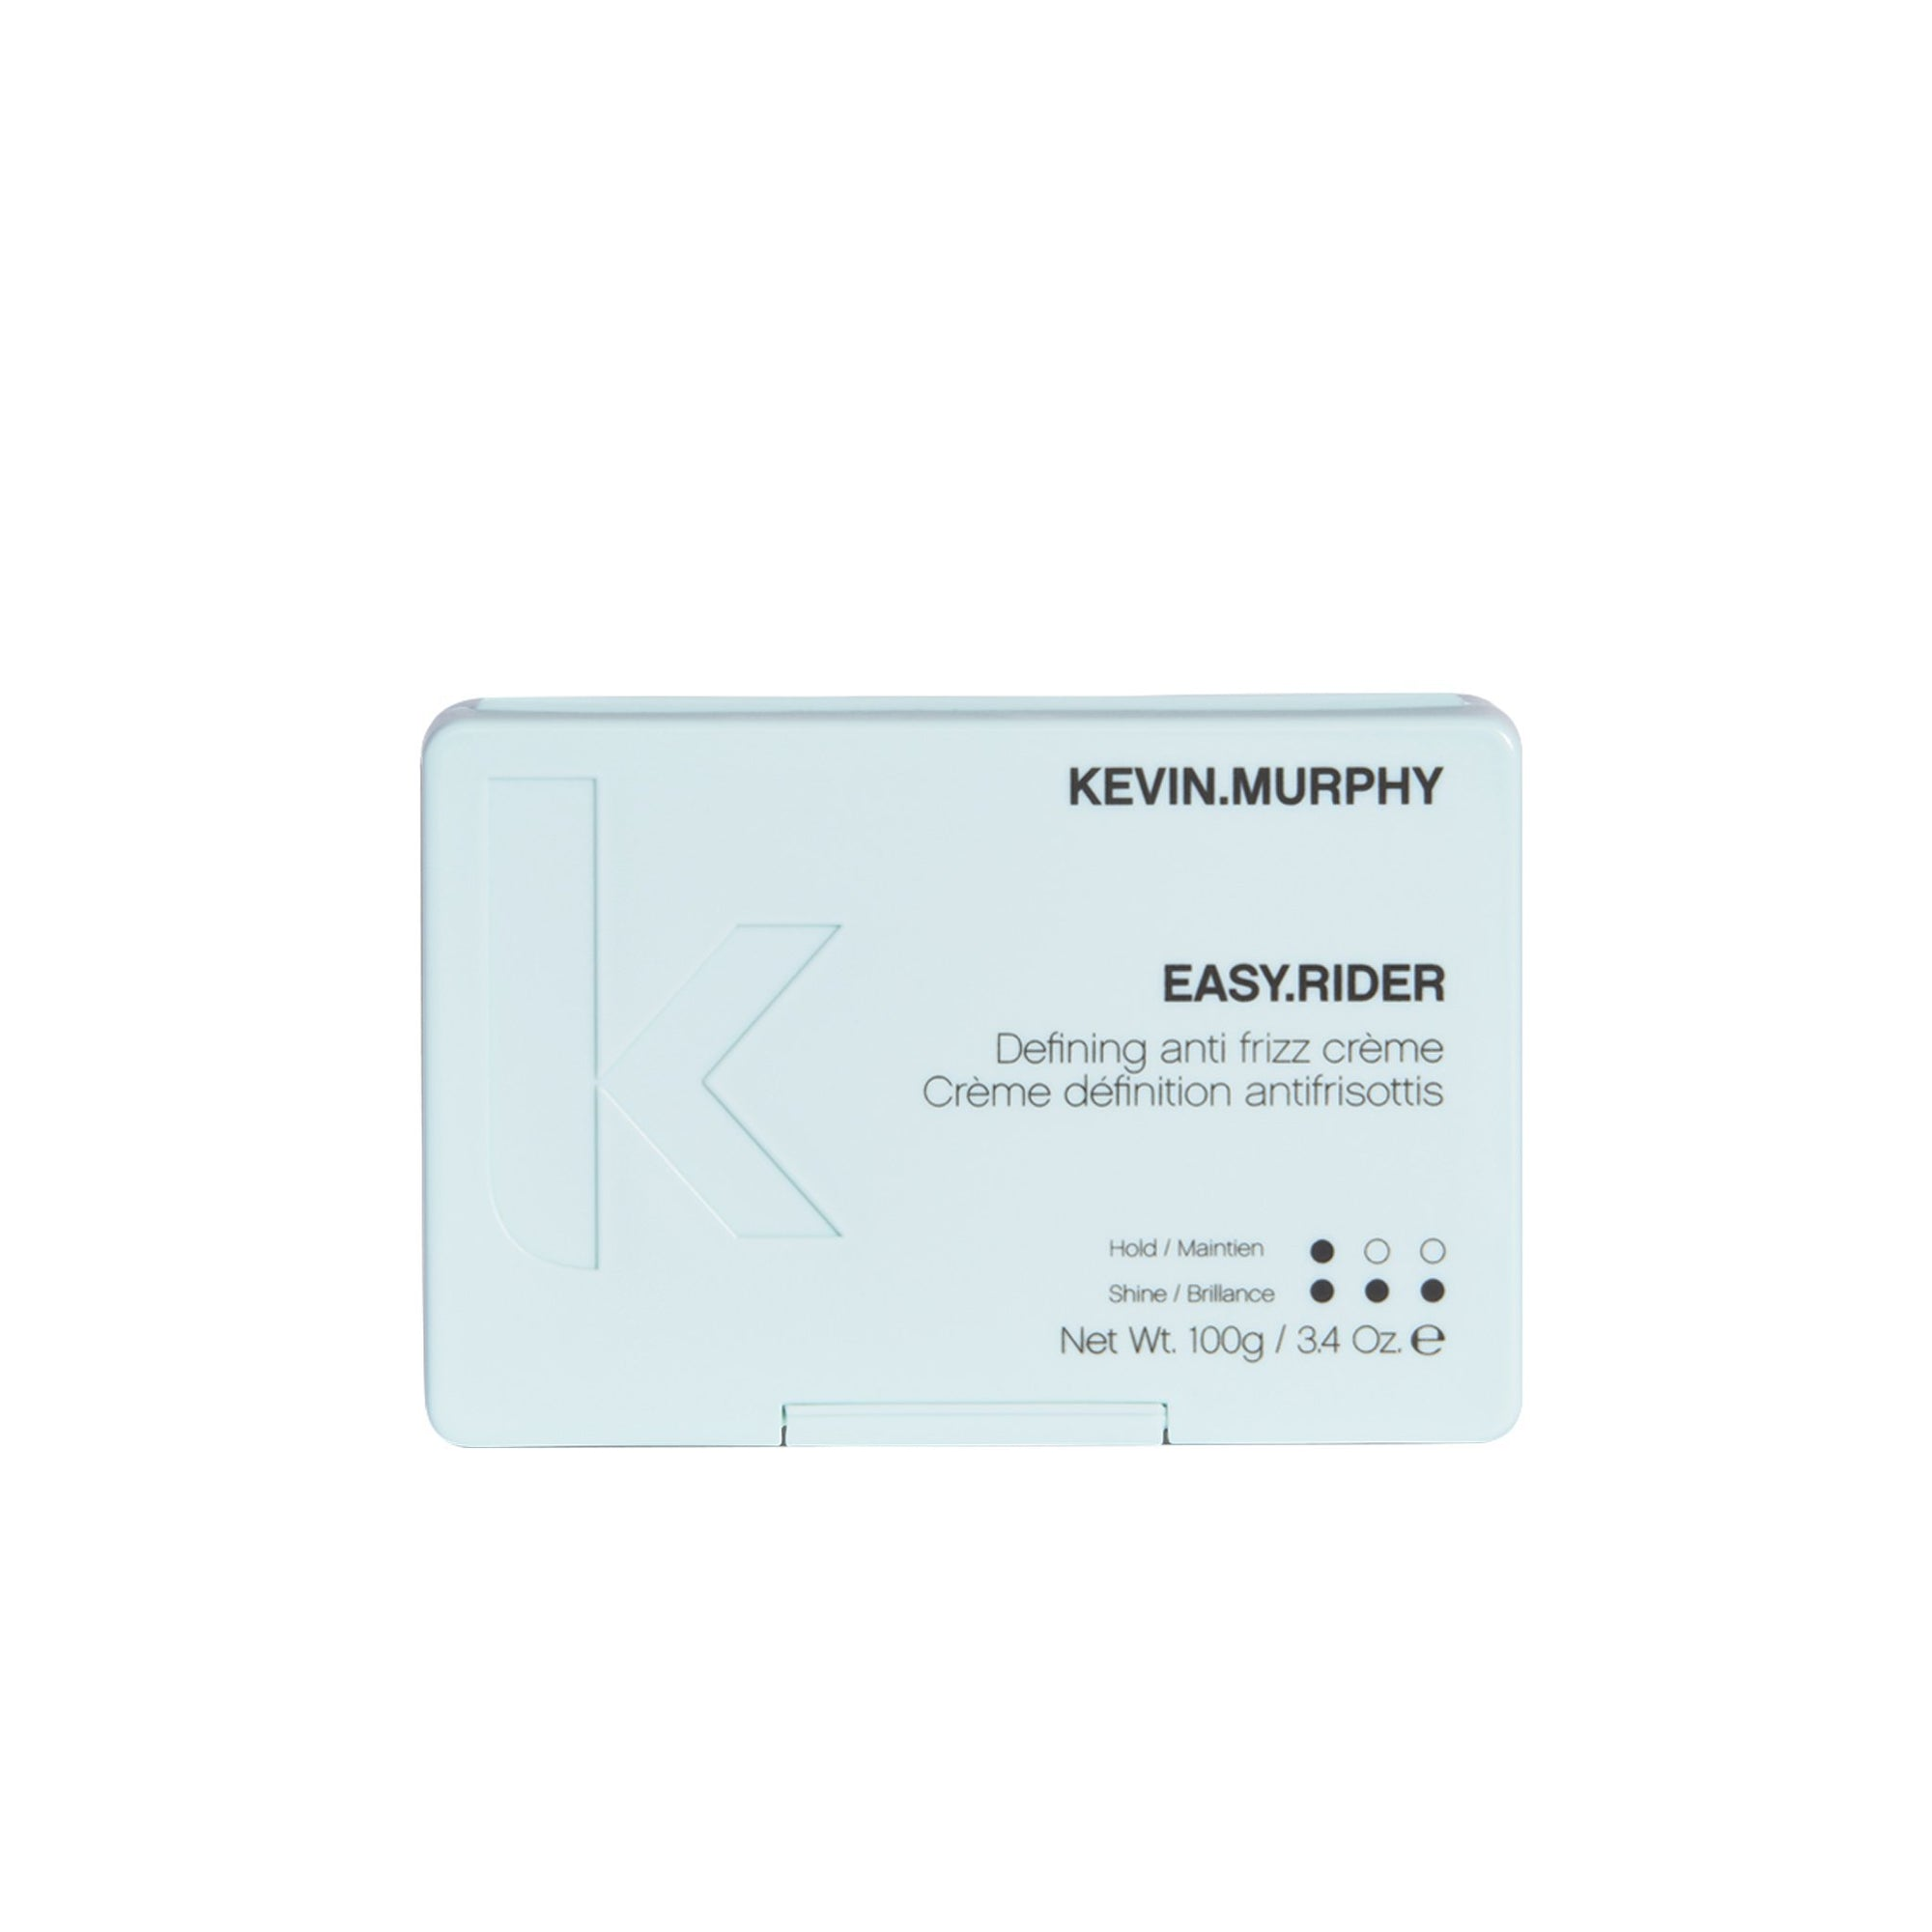 Kevin Murphy EASY.RIDER 100g